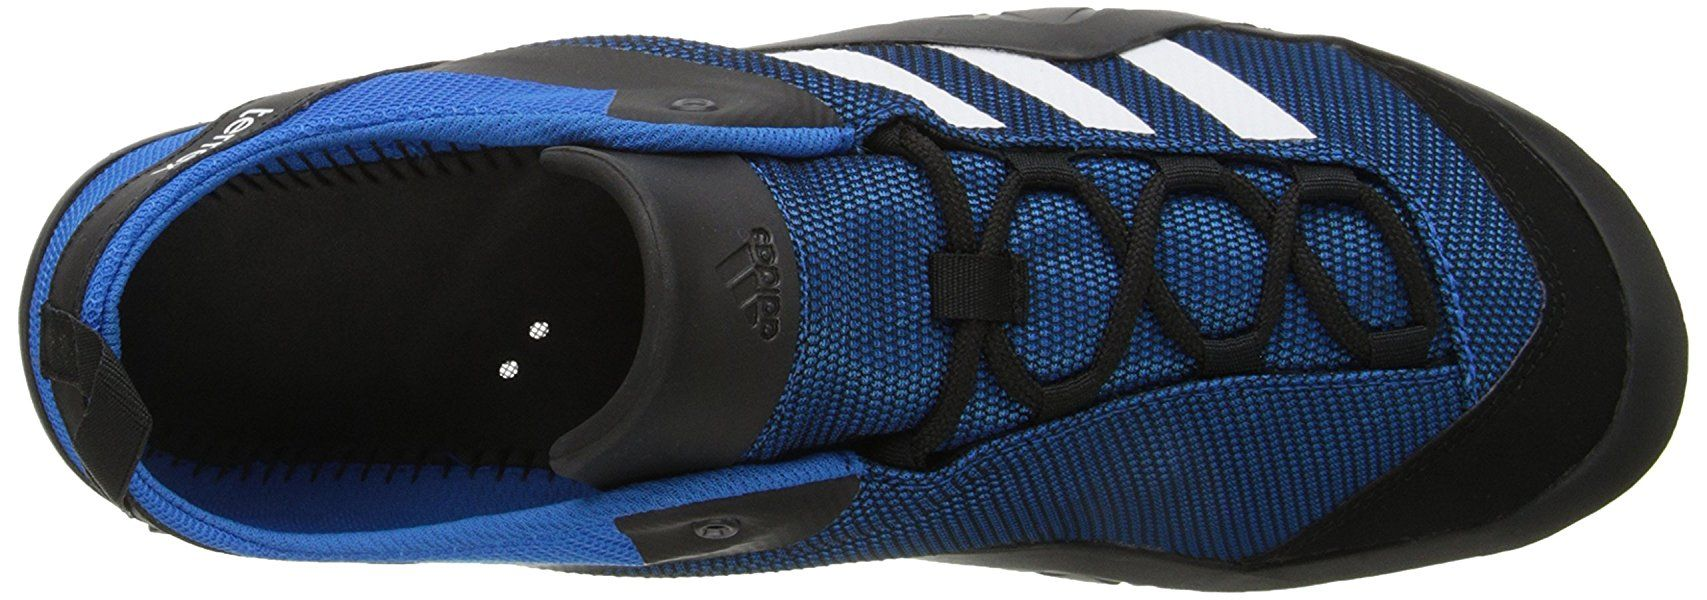 reputable site ce5eb 8510b adidas Outdoor Men's Climacool Jawpaw Lace Water Shoe, Shock ...